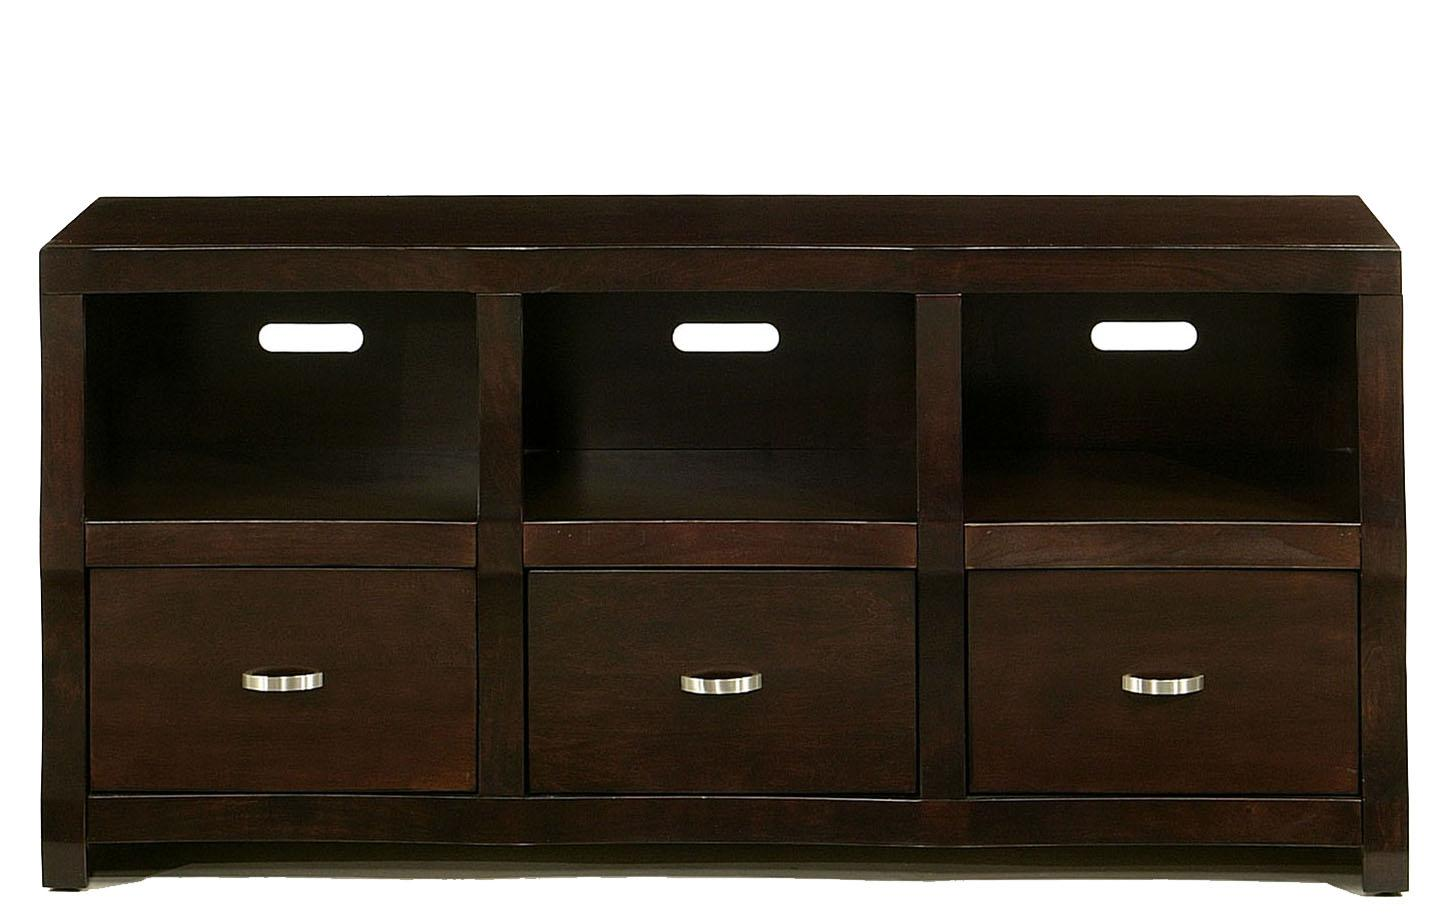 "Morris Home Furnishings Cainhill Cainhill 60"" Console - Item Number: 6049"